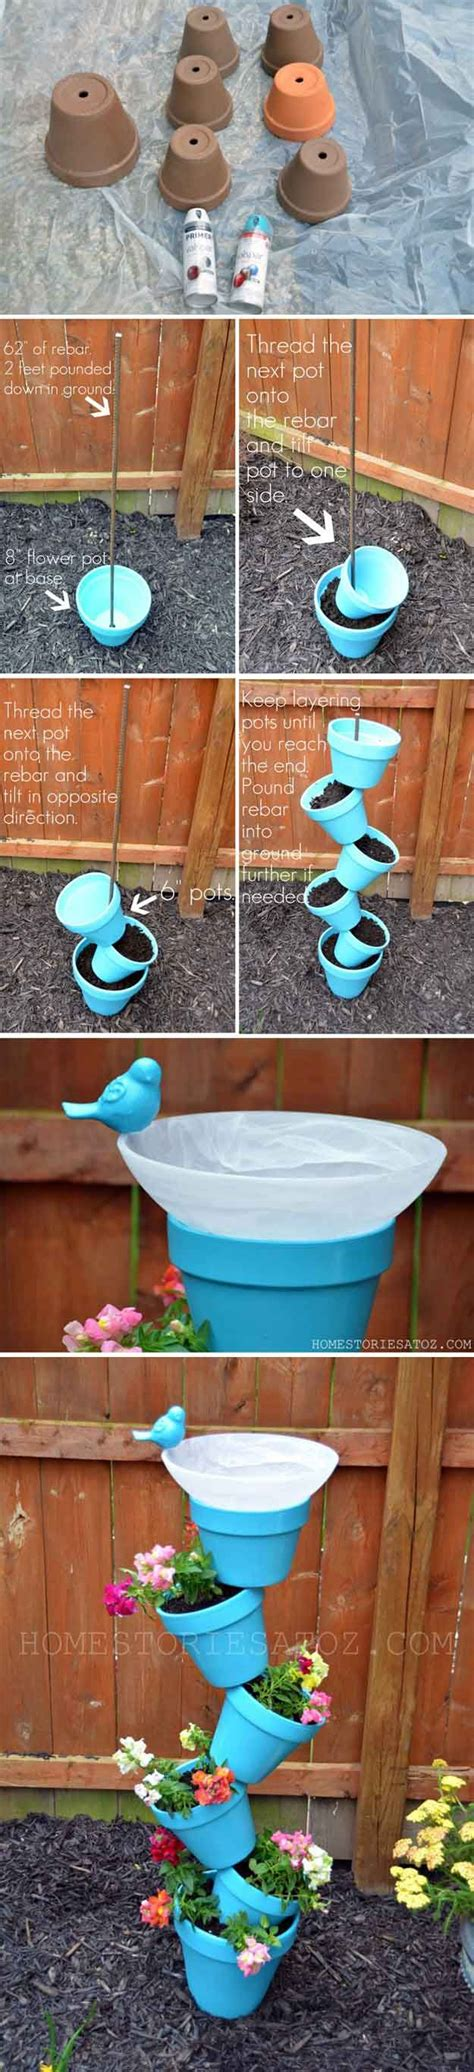 cheap diy backyard projects 1000 ideas about backyard projects on pinterest diy